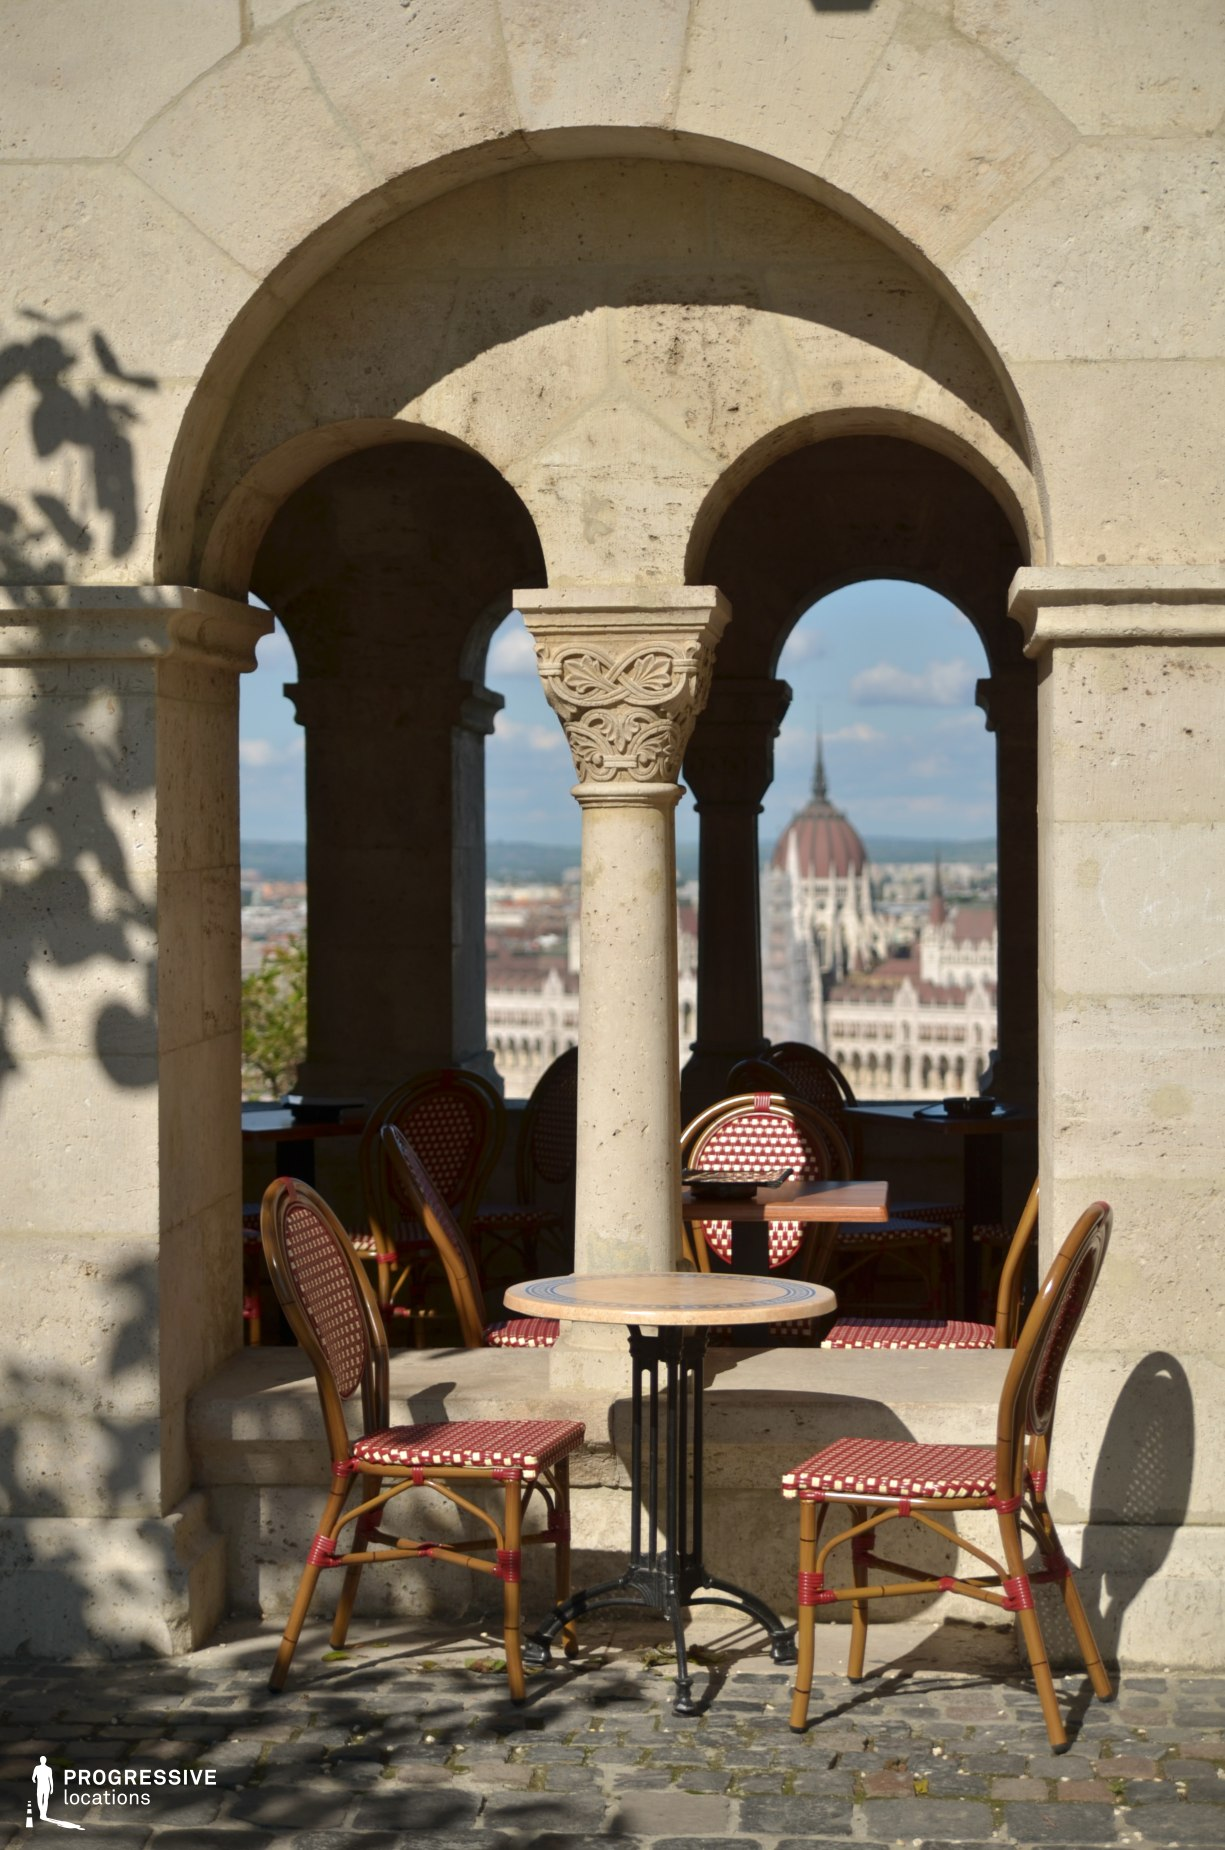 Locations in Budapest: Fishermans Bastion Cafe